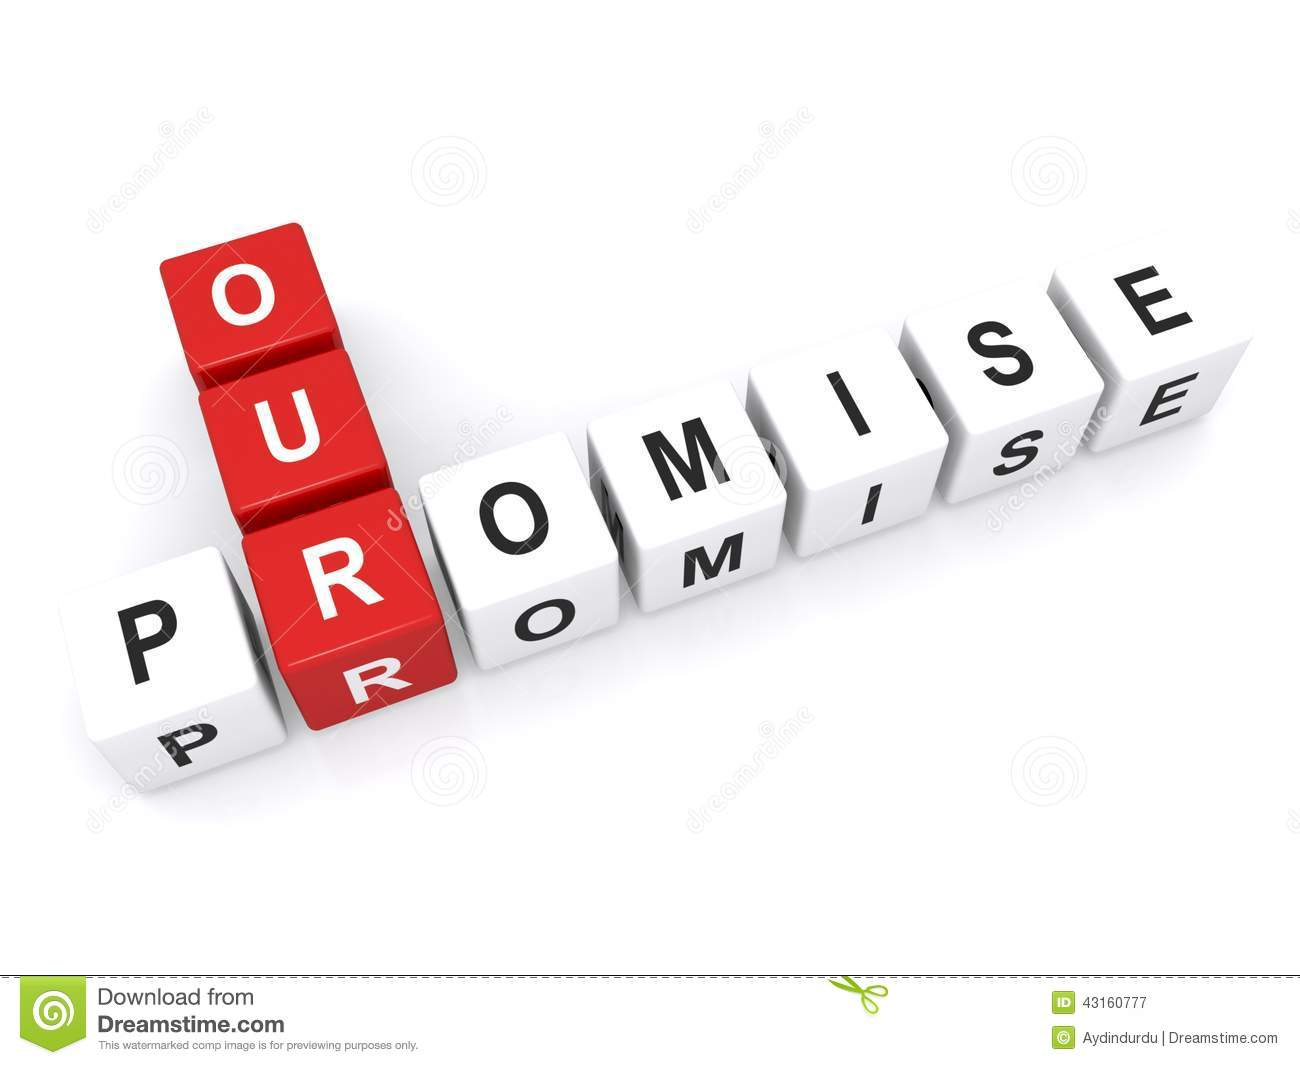 our promise sign stock image image of squares  cubes clip art letters free images black and white clip art letters free downloads